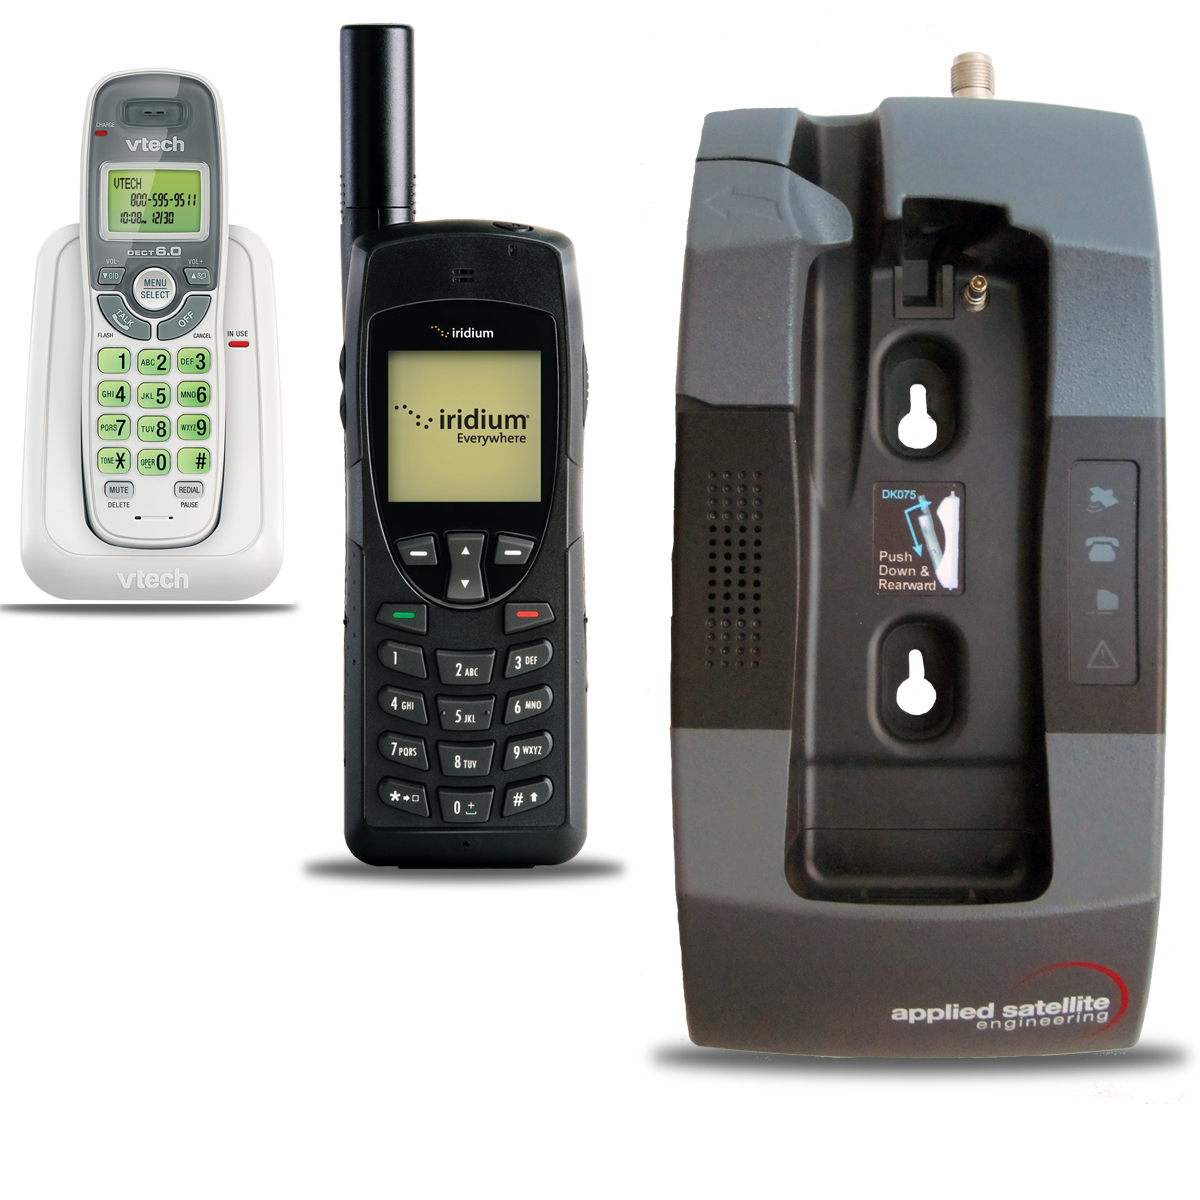 ir9555-satcomm-ase-dk075-docking-station-with-iridium-9555-satellite-phone-bundle.jpg